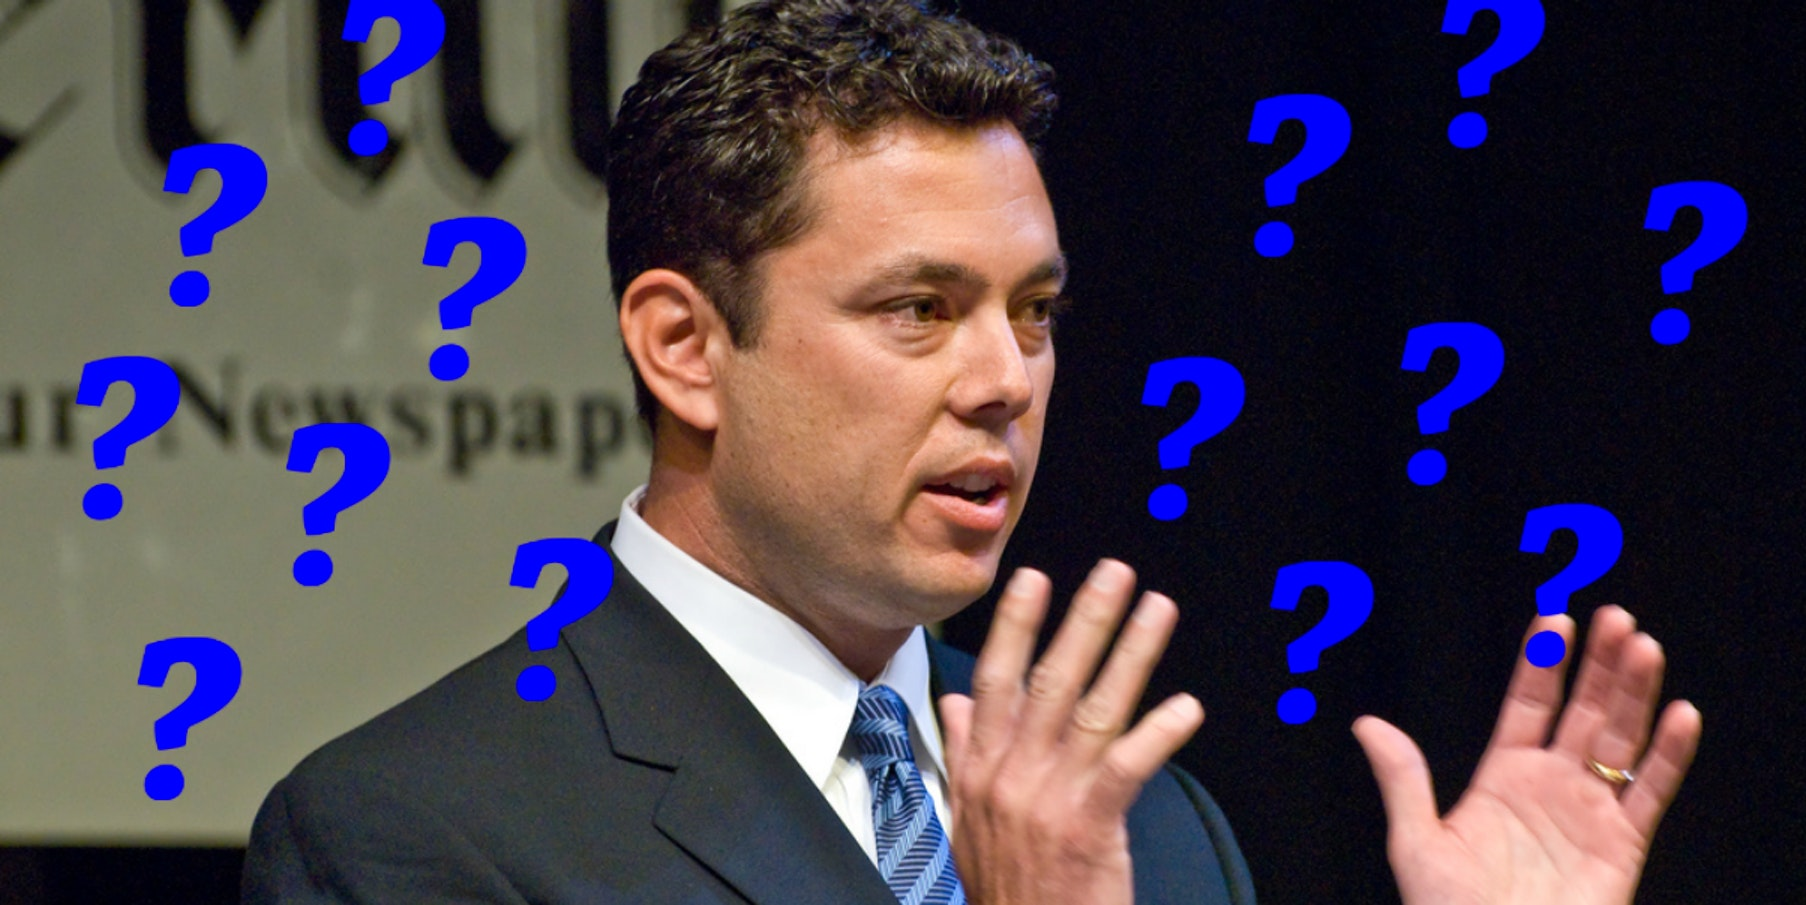 Jason Chaffetz refused to answer a science question.